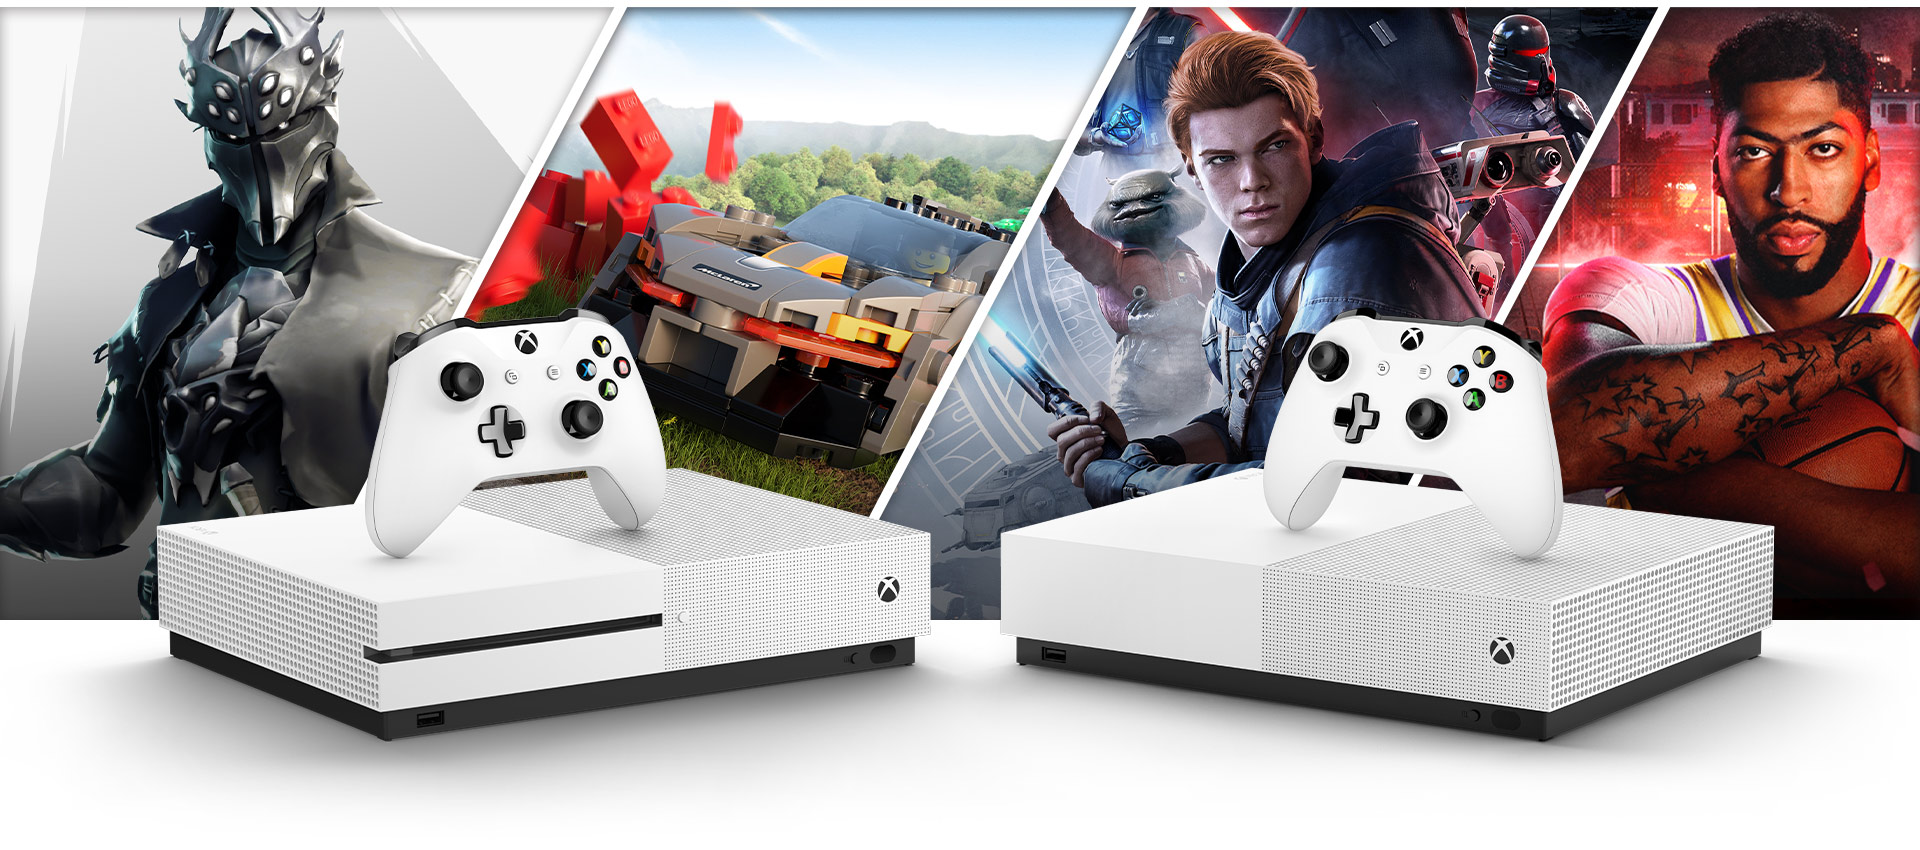 Изображения из игр Fortnite, Forza Horizon 4, Star Wars Jedi Fallen Order и NBA 2K20 позади консолей Xbox One S и Xbox One S All Digital Edition